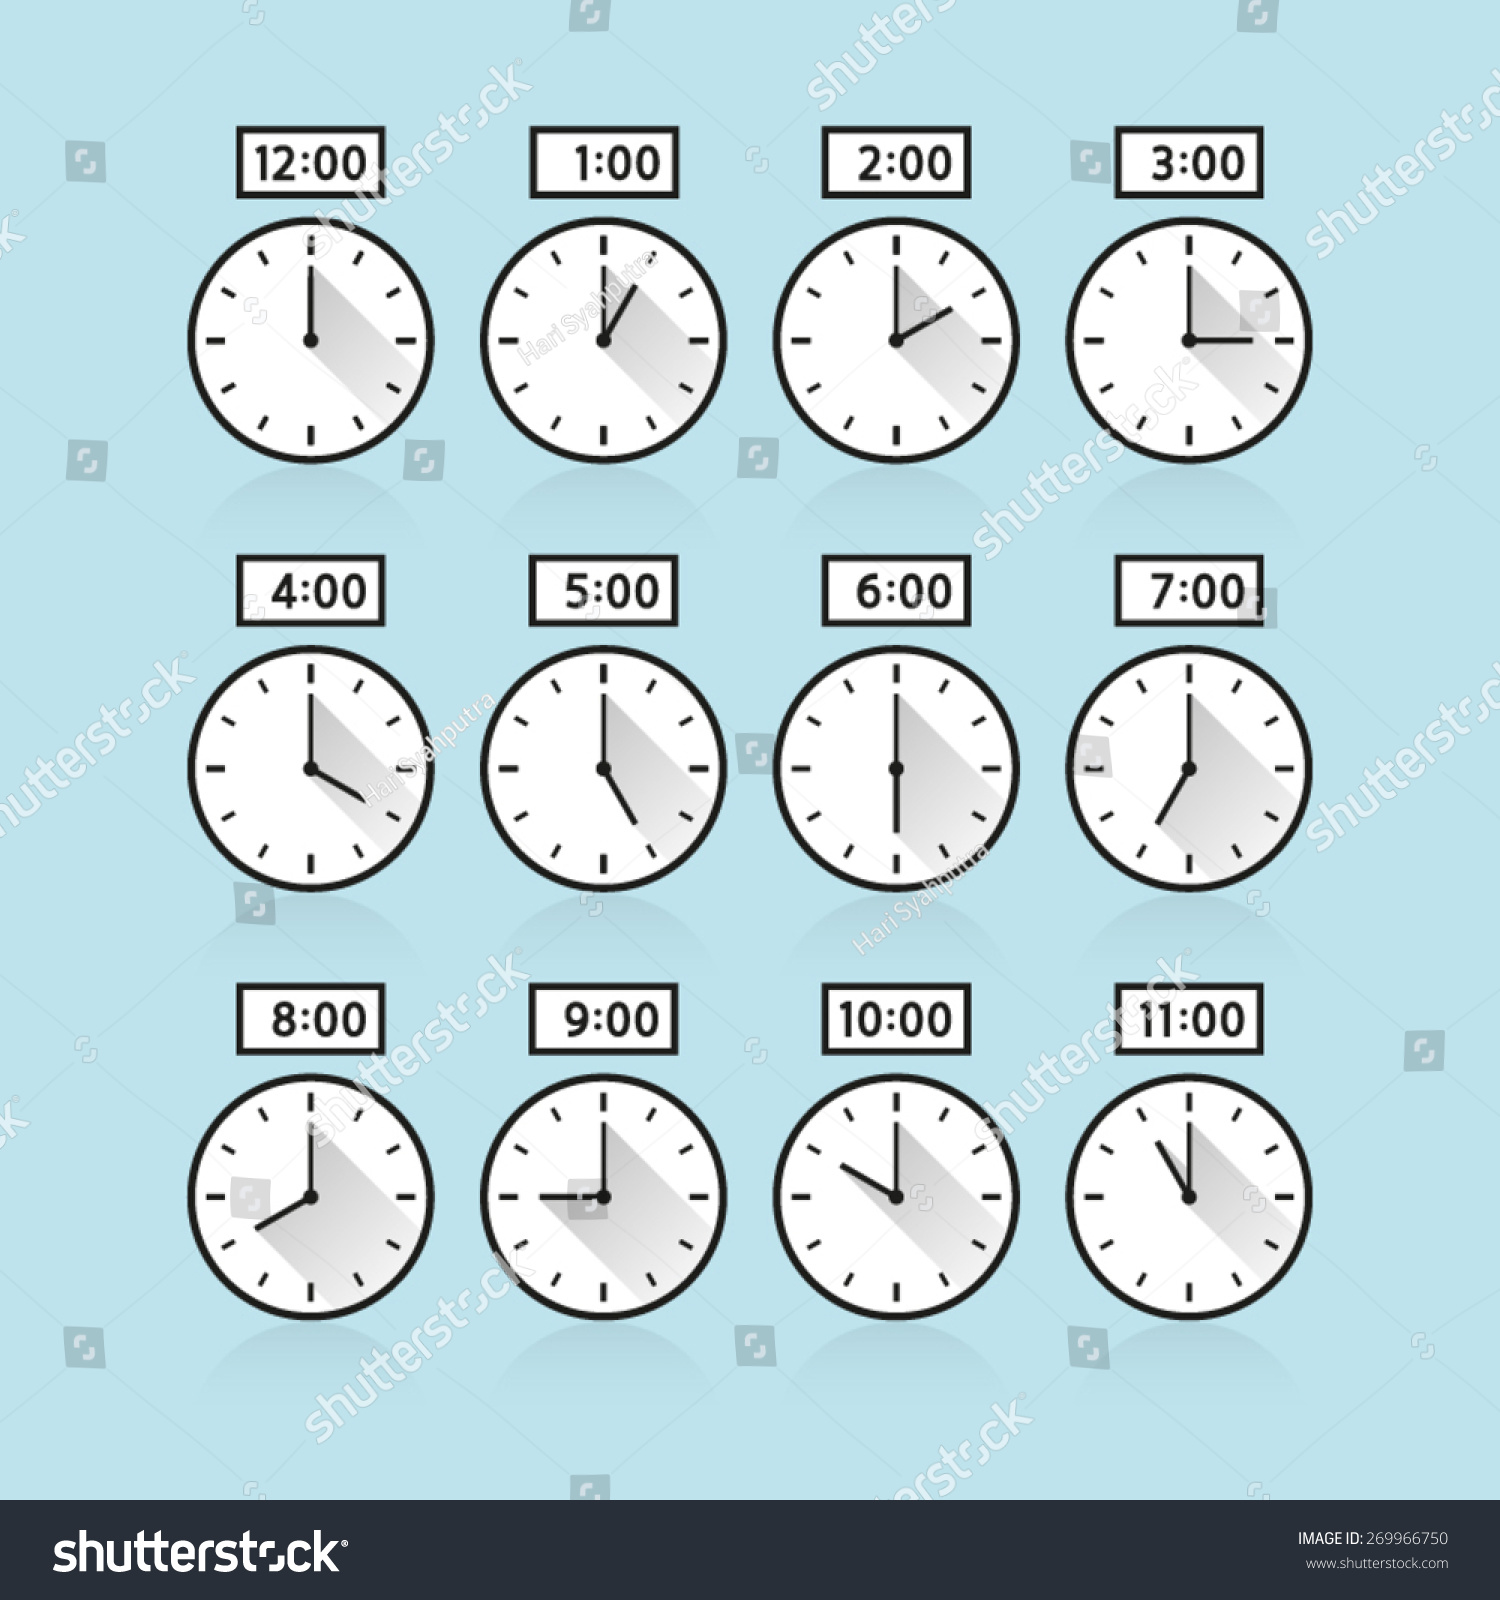 Vectorog Clock 24 Hours Day Night Serial Icon Symbol Flat Sequence Template